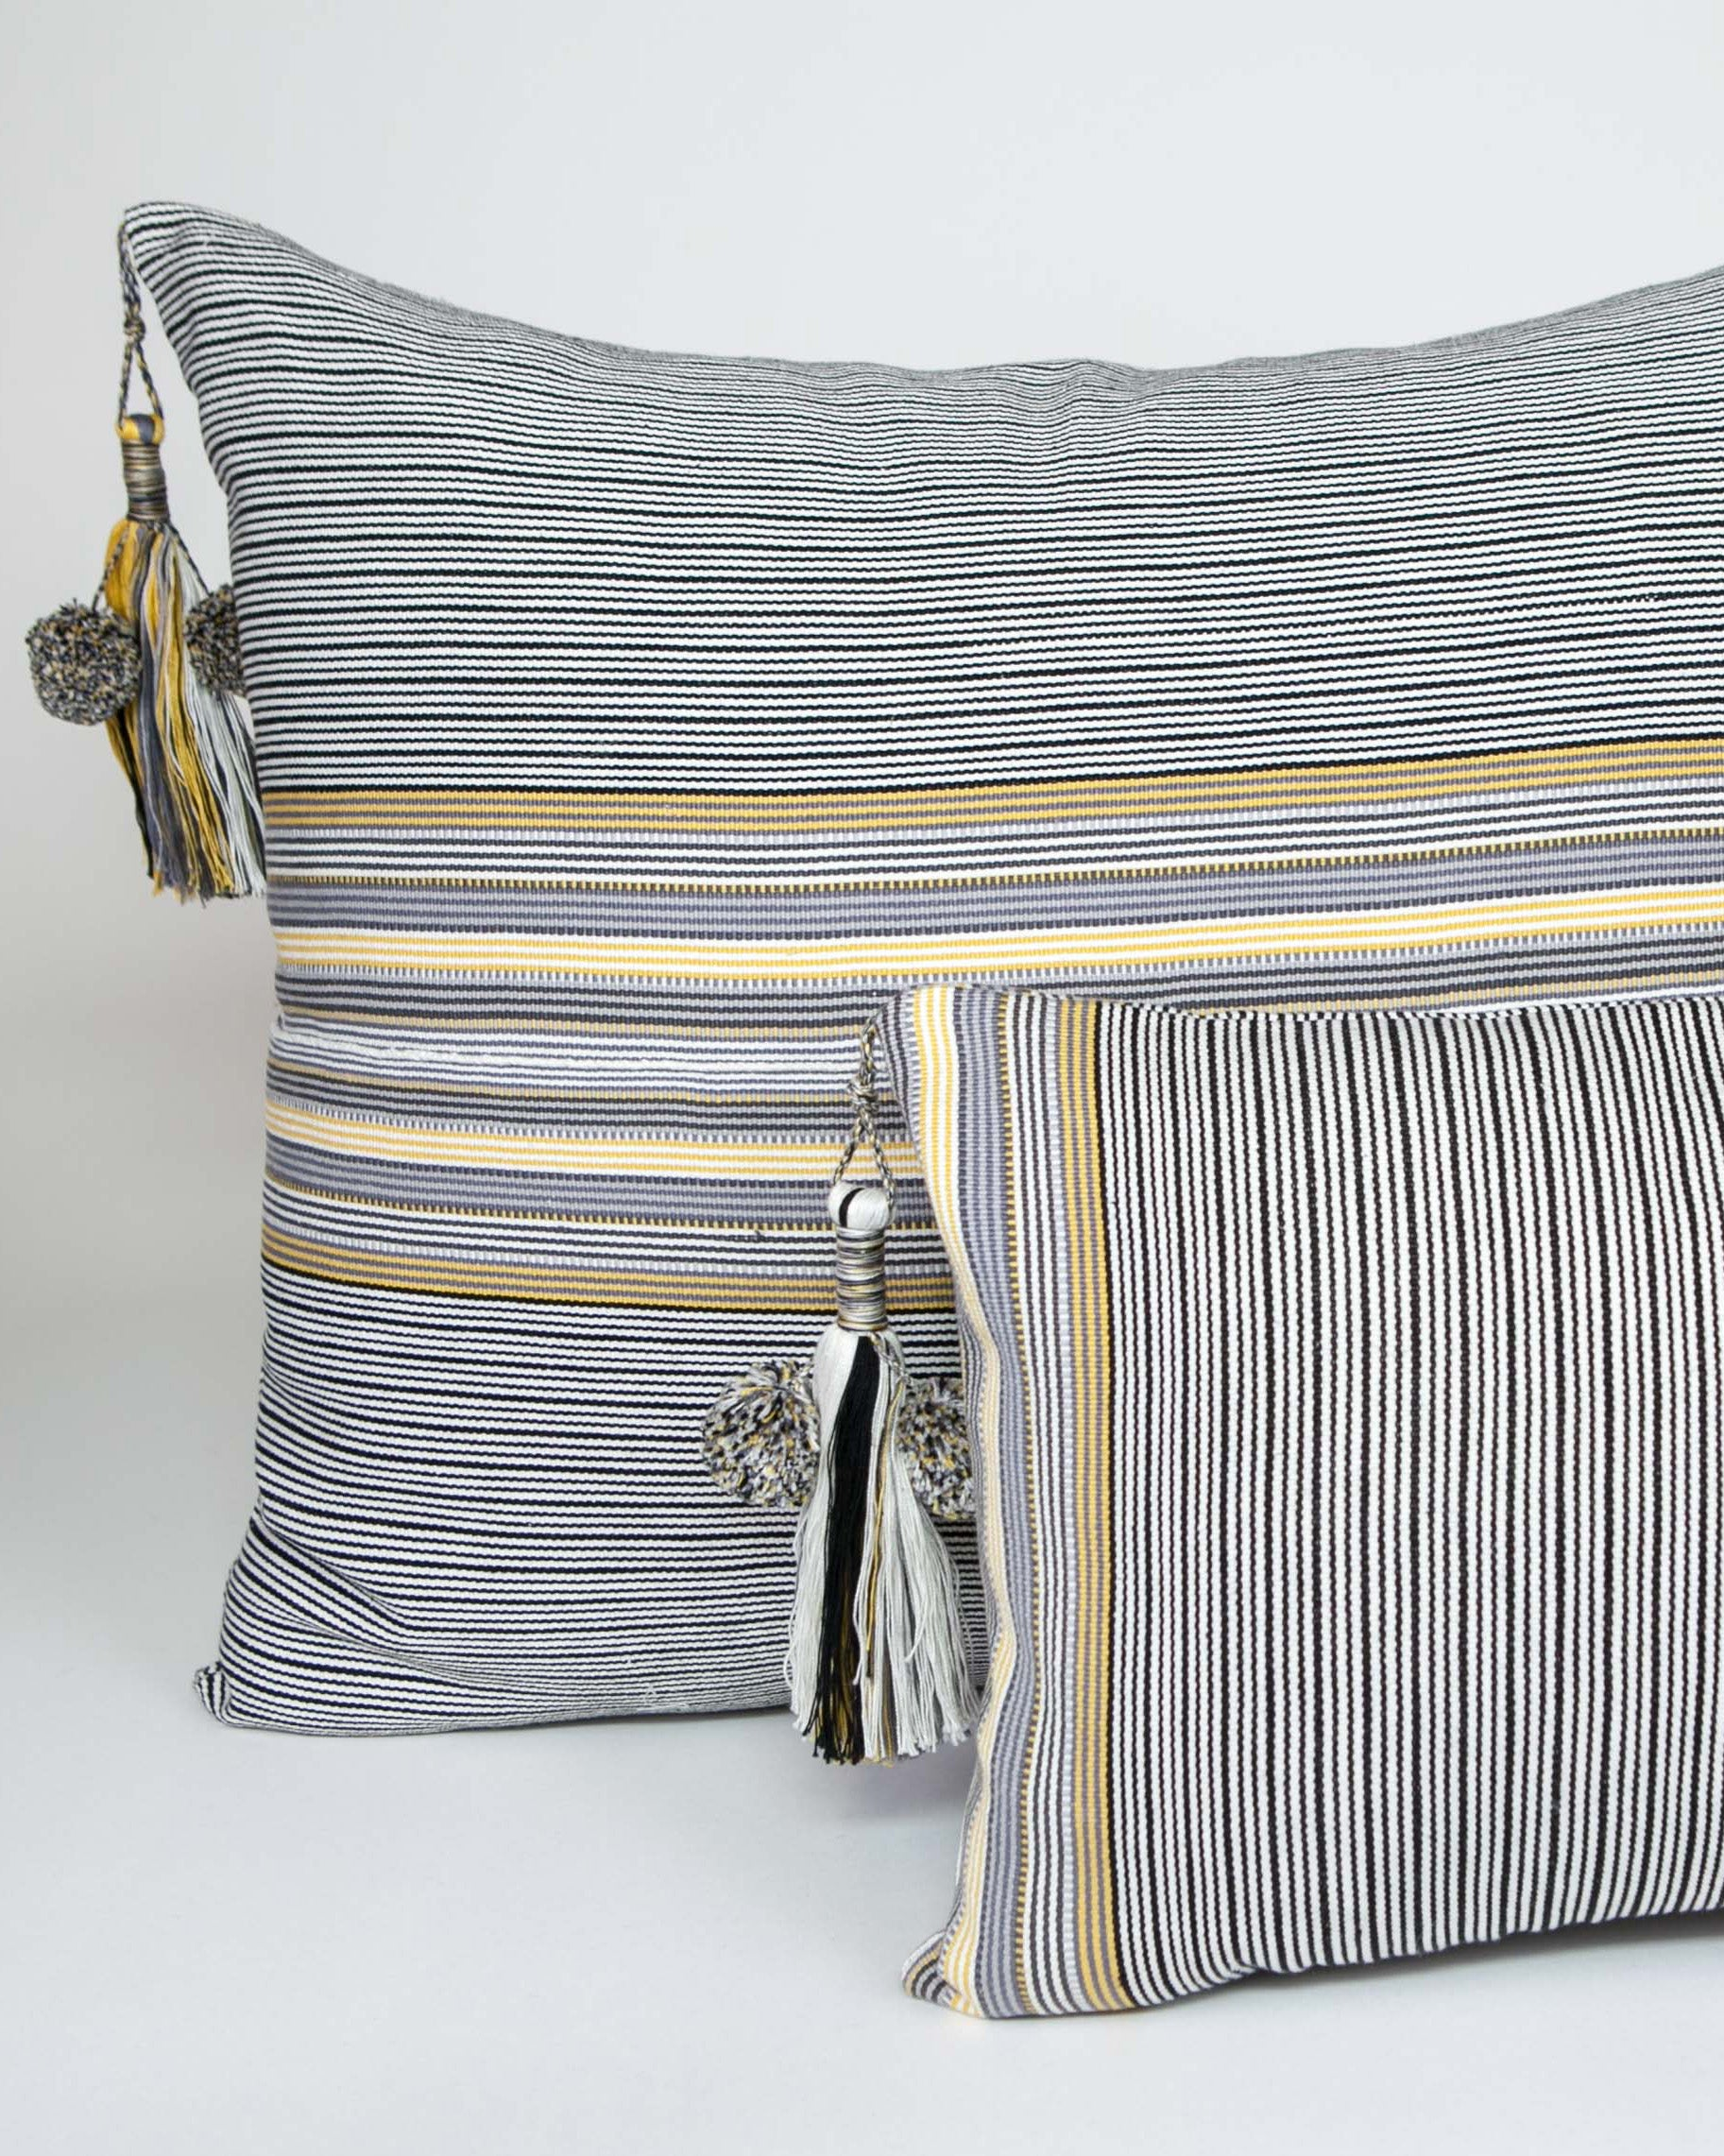 Handwoven cotton pillow black and white with grey and yellow stripes with tassel